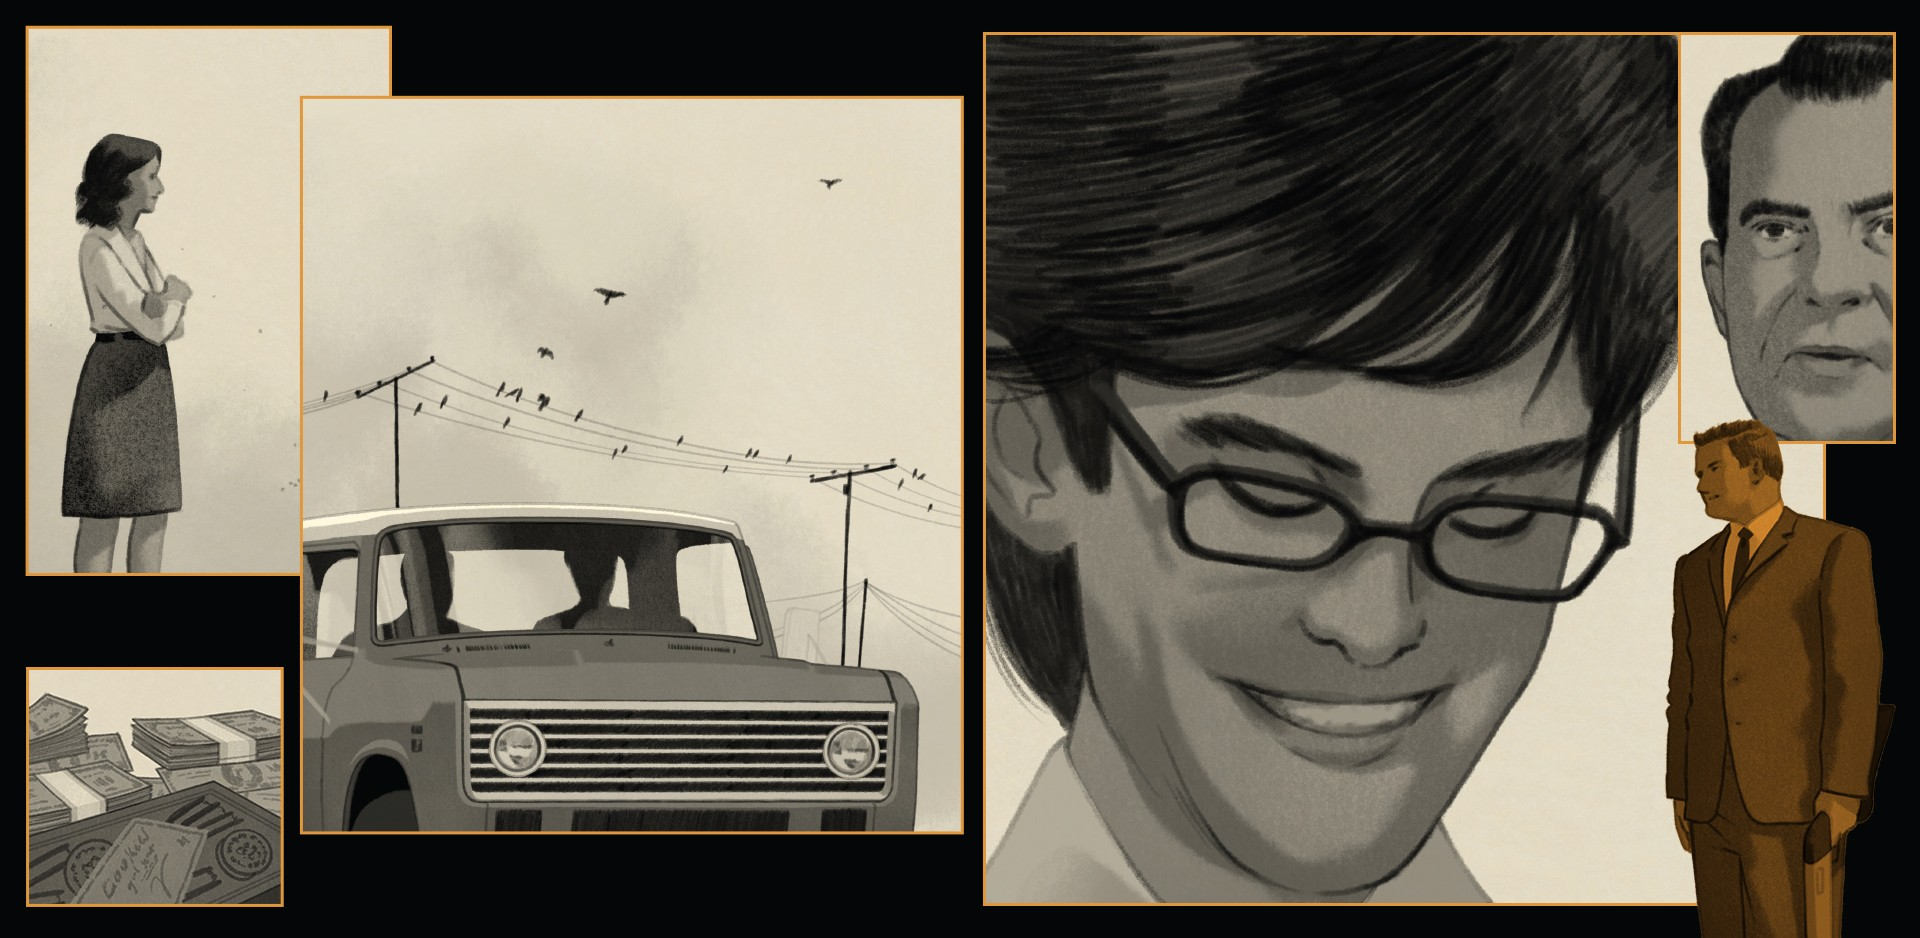 collage of illustrations: woman alone; stacks of cash; truck with birds on wire; sketches of men; Nixon